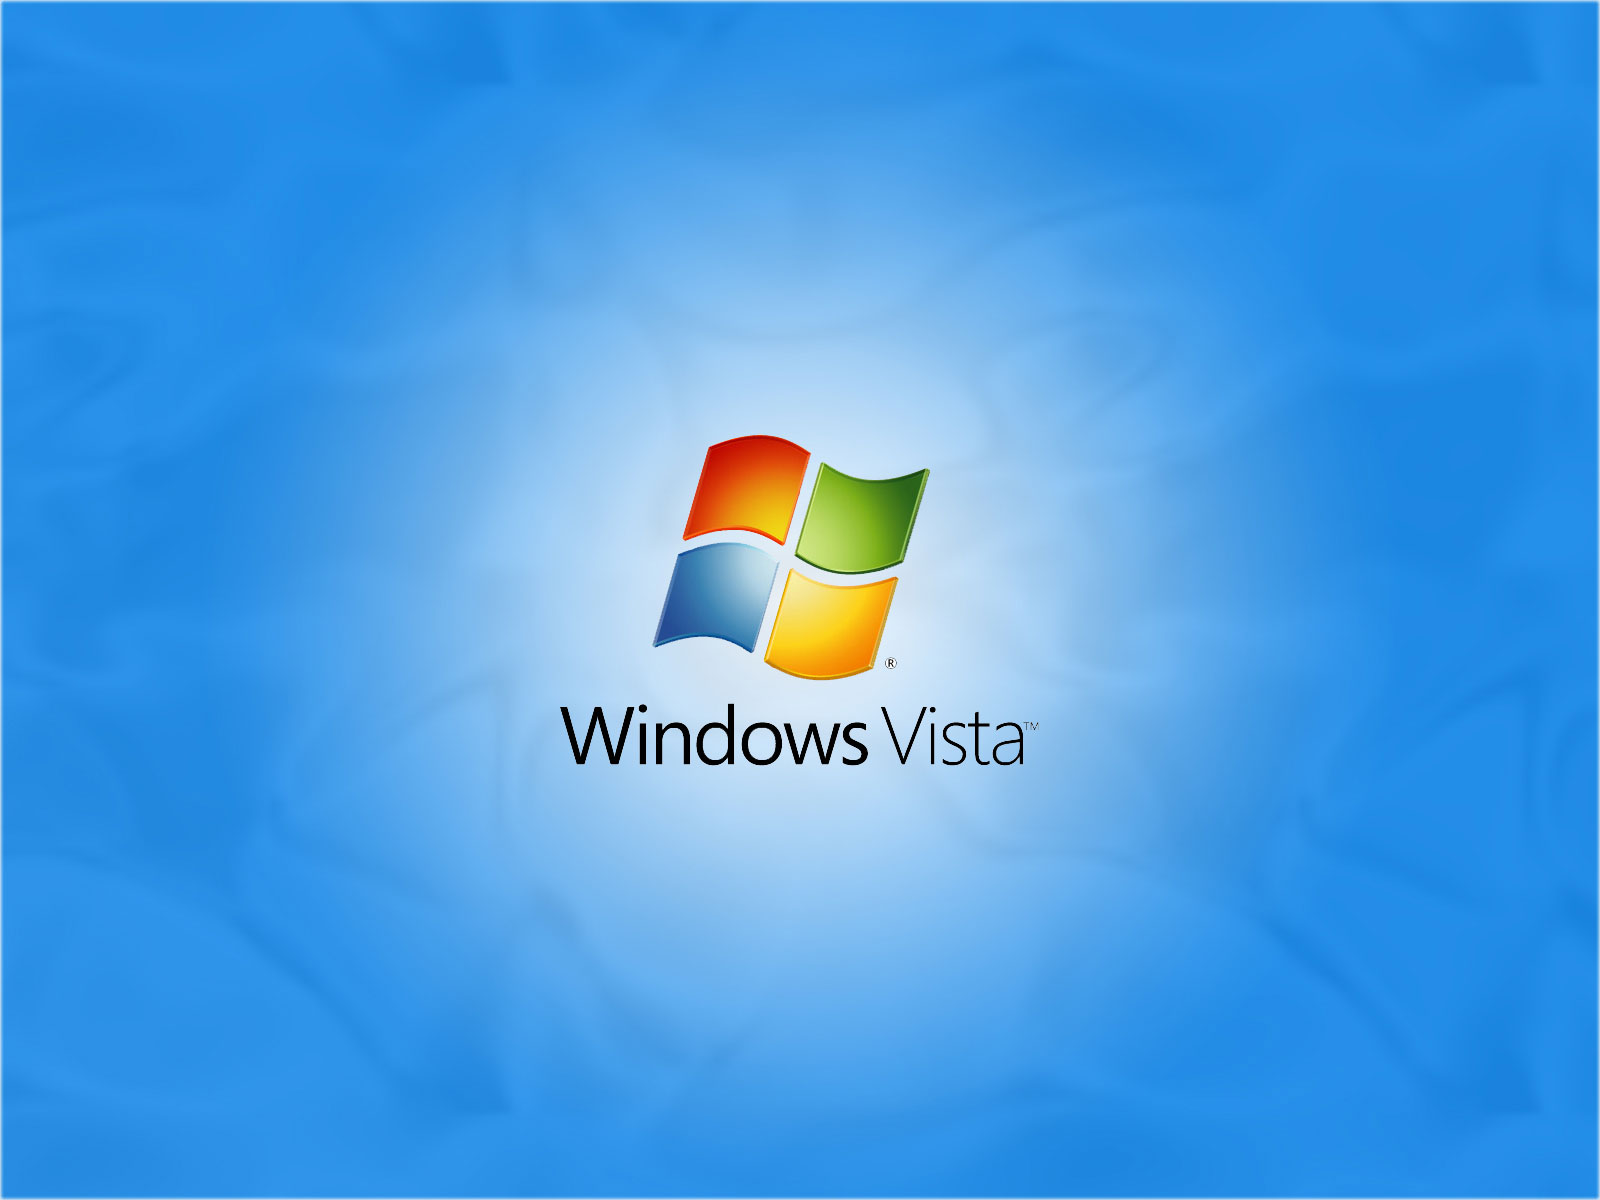 Windows Vista Wallpape...